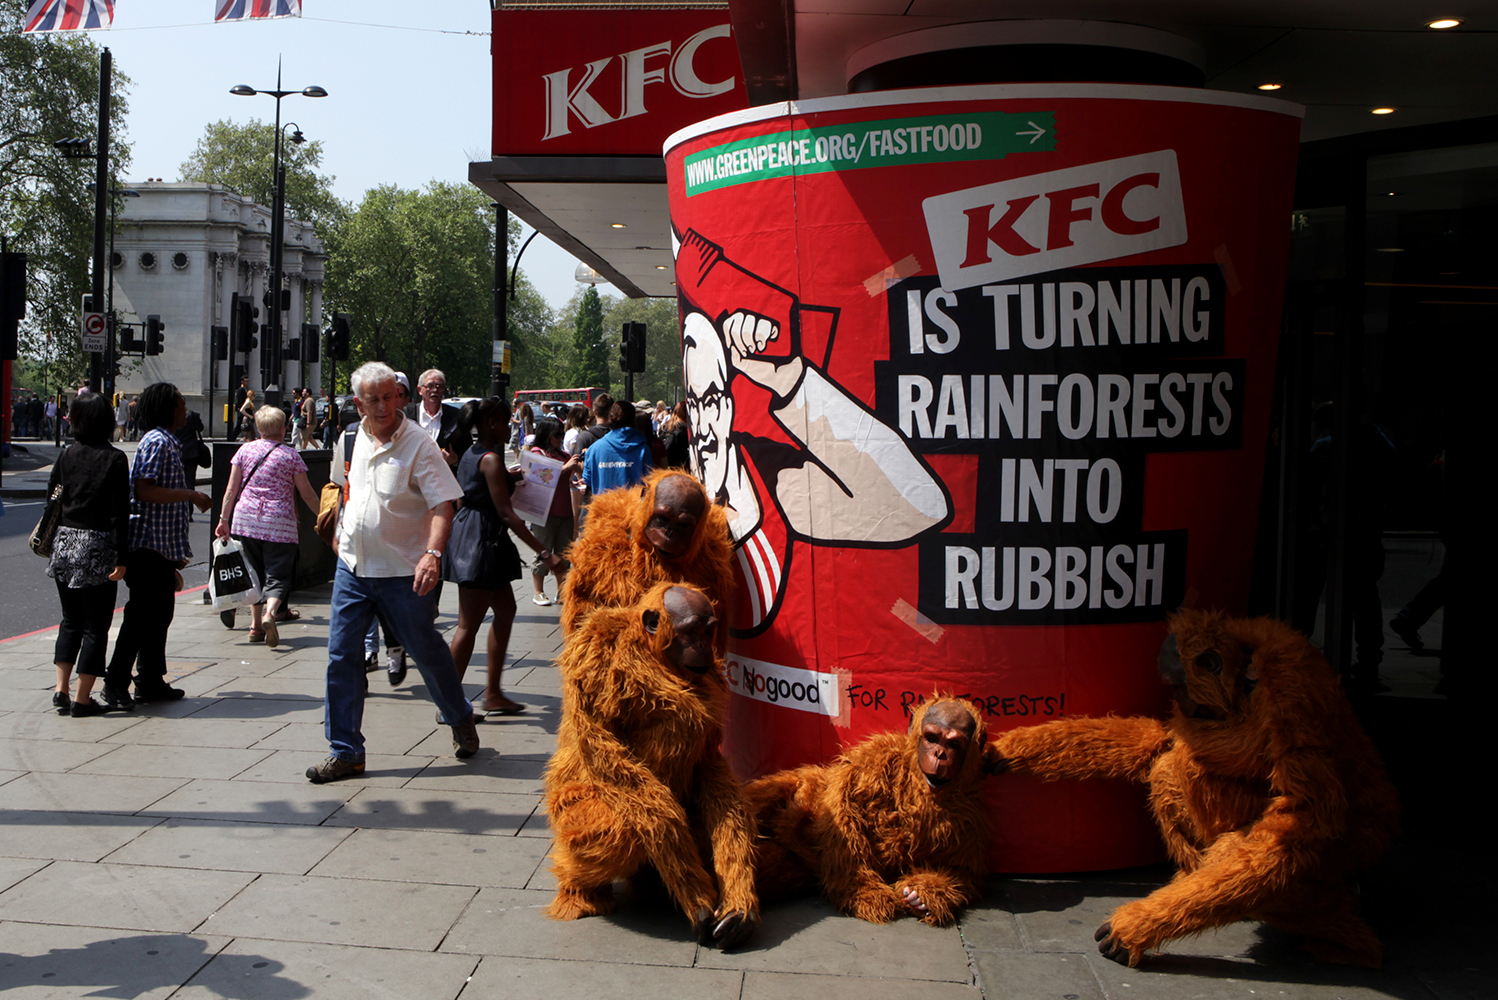 Campaign_Greenpeace_Forests_KFC.png